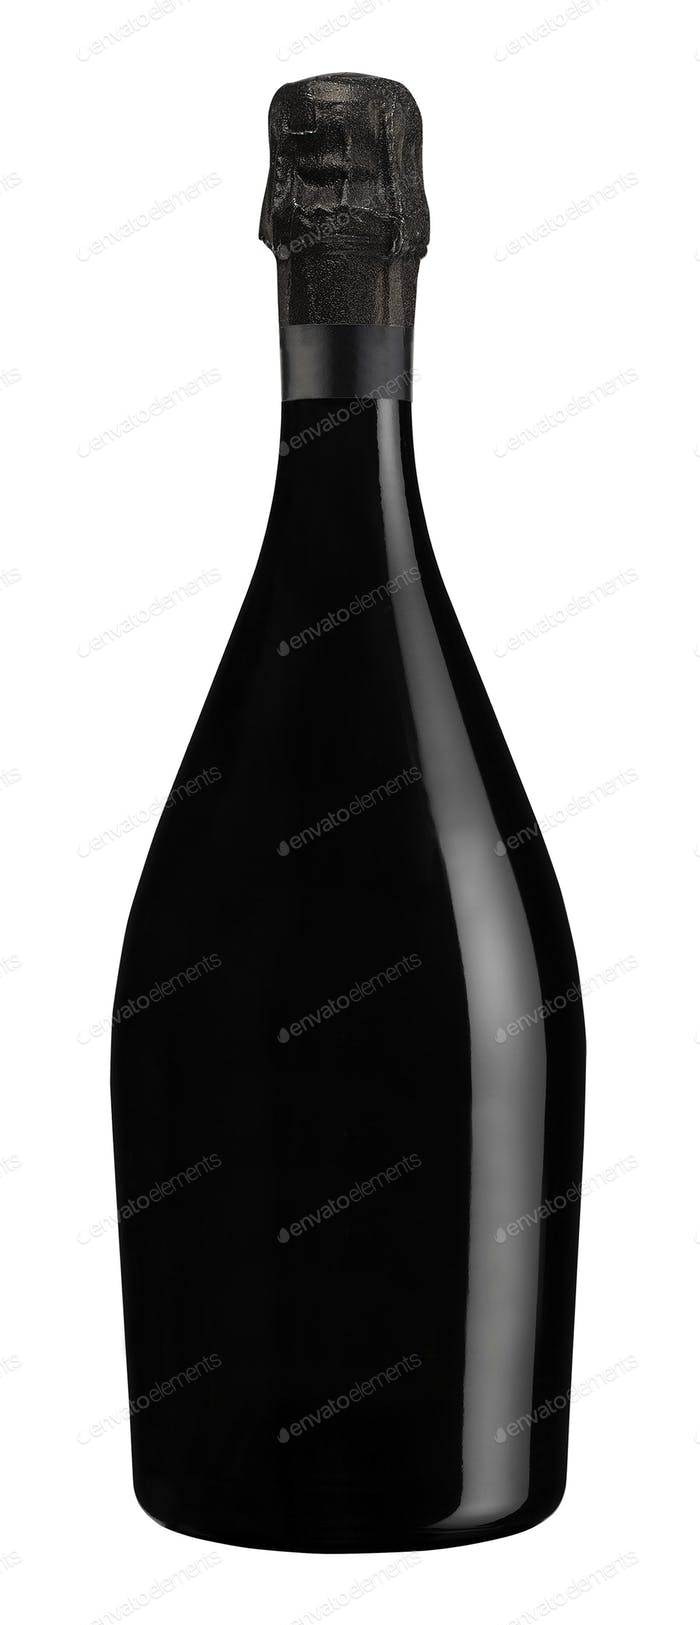 Bottle of champagne isolated